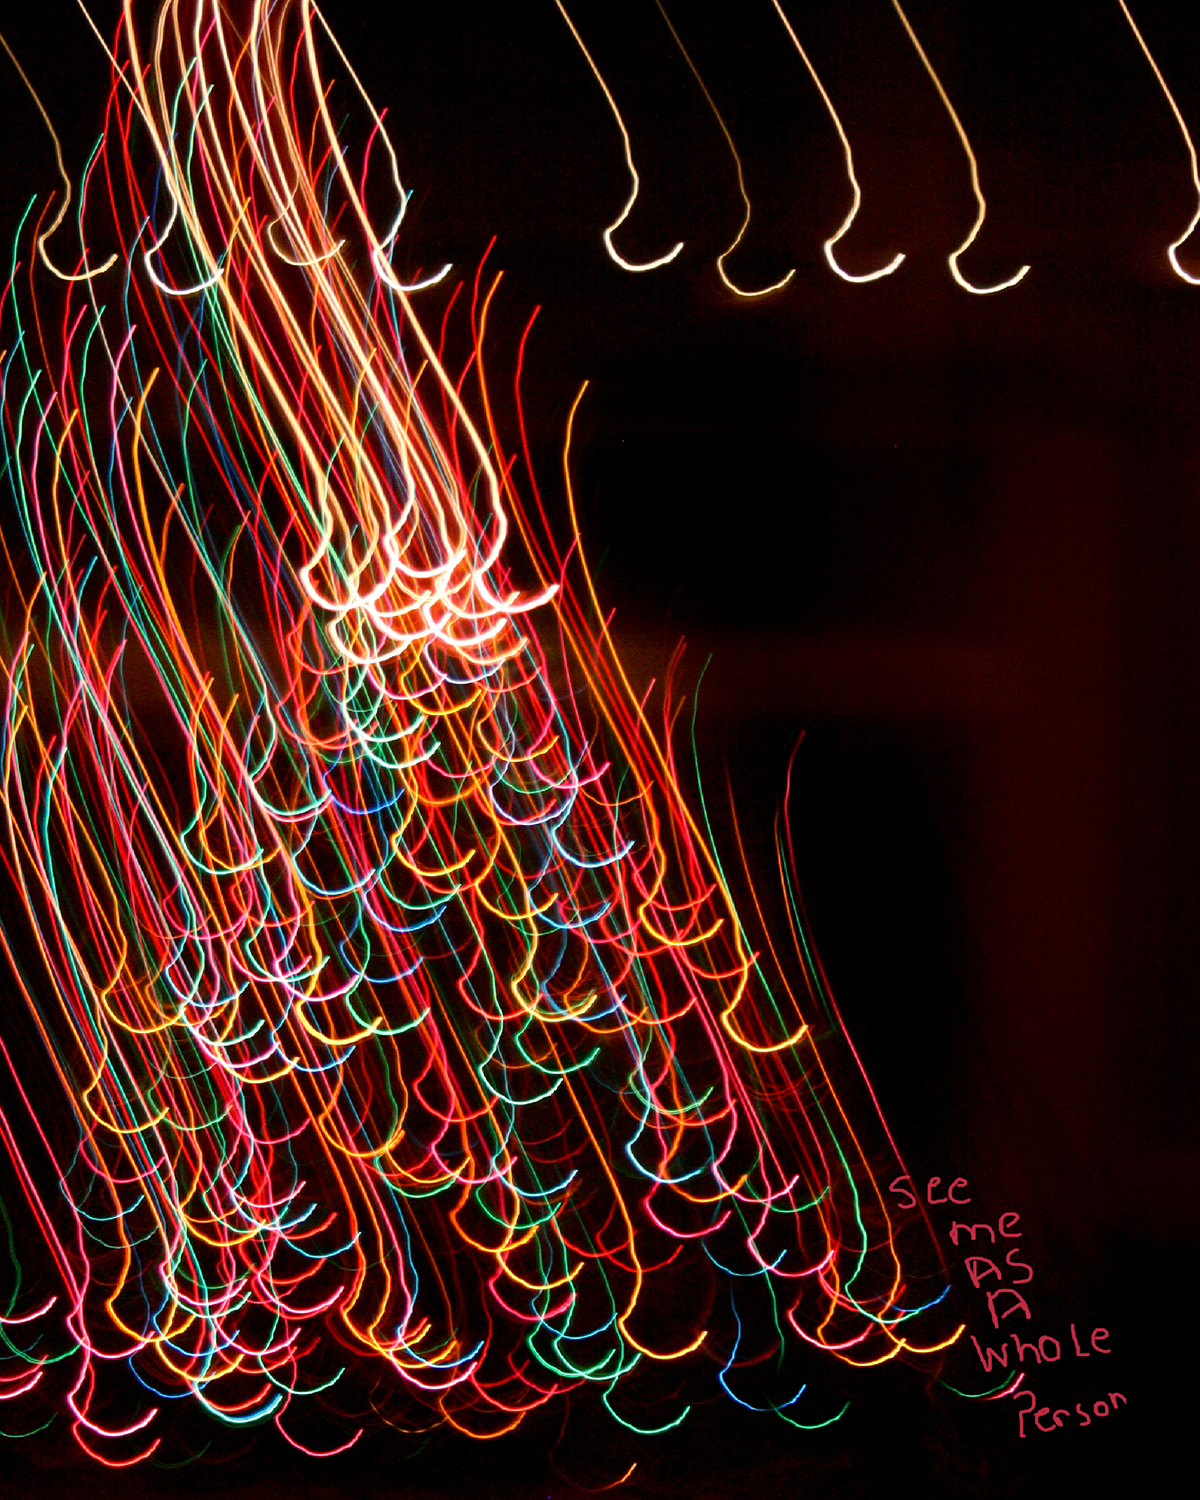 These photographs were created at night using a slow shutter speed and colored lights. Afterward, I looked at each abstract image and felt that they described how I, as a differently abled person, feel sometimes. The darkness that surrounds the light paintings merely acts to show the beauty of the colors and shapes. These photographs represent the positivity of being differently abled and the hope that the world would accept me as I am.  Title: See Me AS I Really Am  Medium: Photography/Digital Arts  Size: 8 x 10  Price $200  For sales inquires, please contact dlutzick@yahoo.com with Winslow Arts Trust Museum